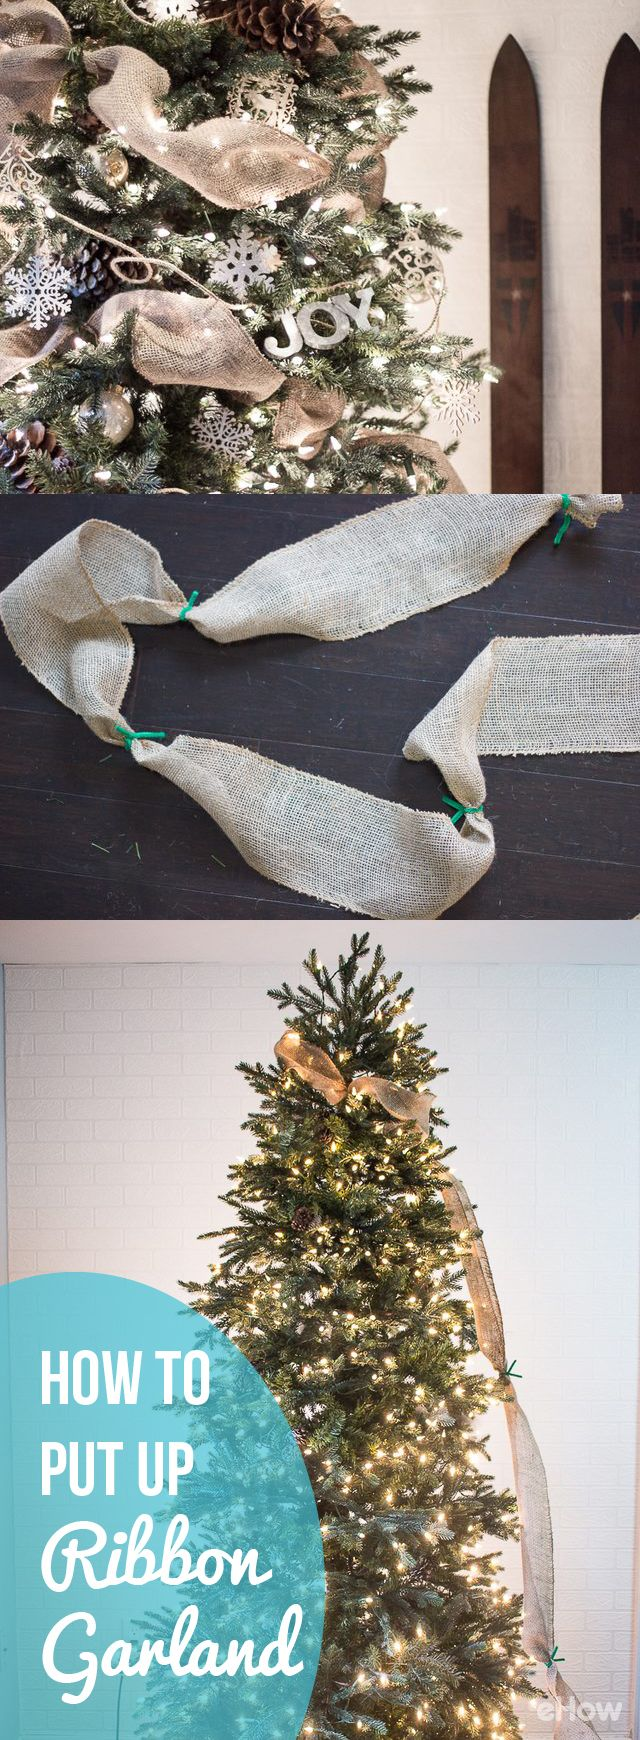 How To Put Ribbon Garland On A Christmas Tree Crafts Net Lights Wiring Diagram Add Statement Piece Your For An Emphasized Stylish Touch Large That Makes The Whole Look Like Gift